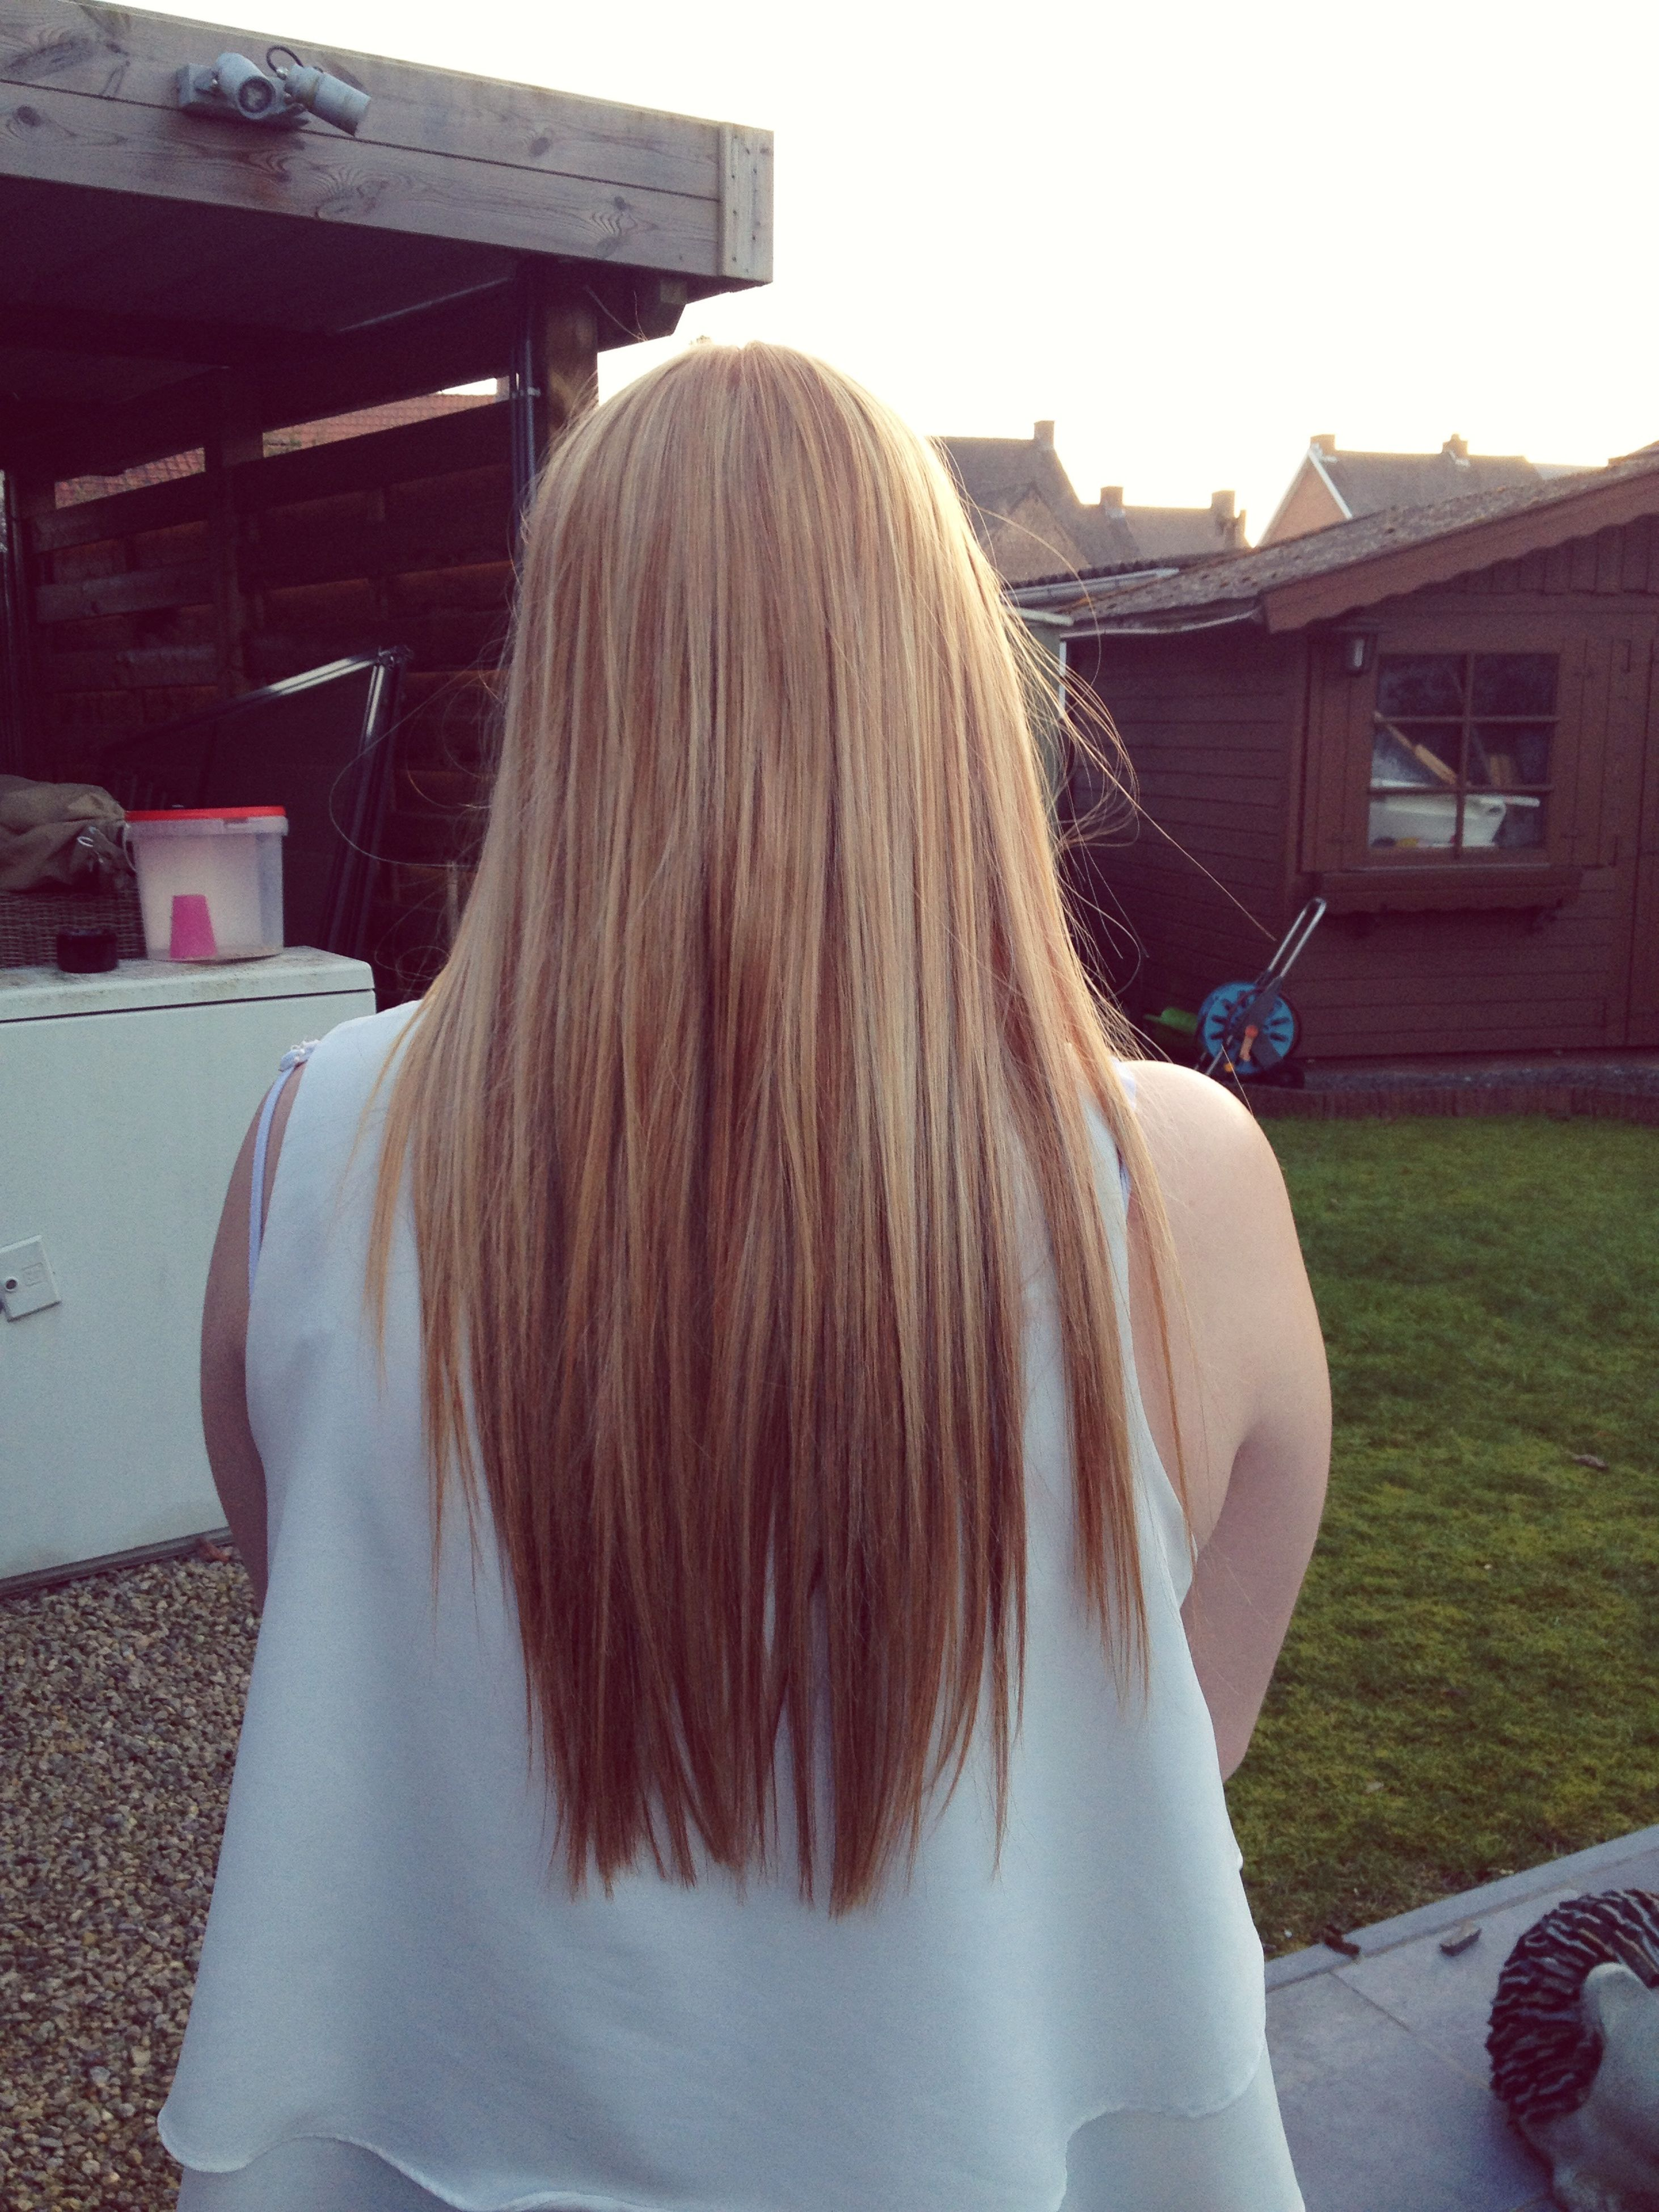 lifestyles, long hair, leisure activity, rear view, young women, blond hair, headshot, casual clothing, person, brown hair, young adult, sunlight, human hair, side view, relaxation, sitting, day